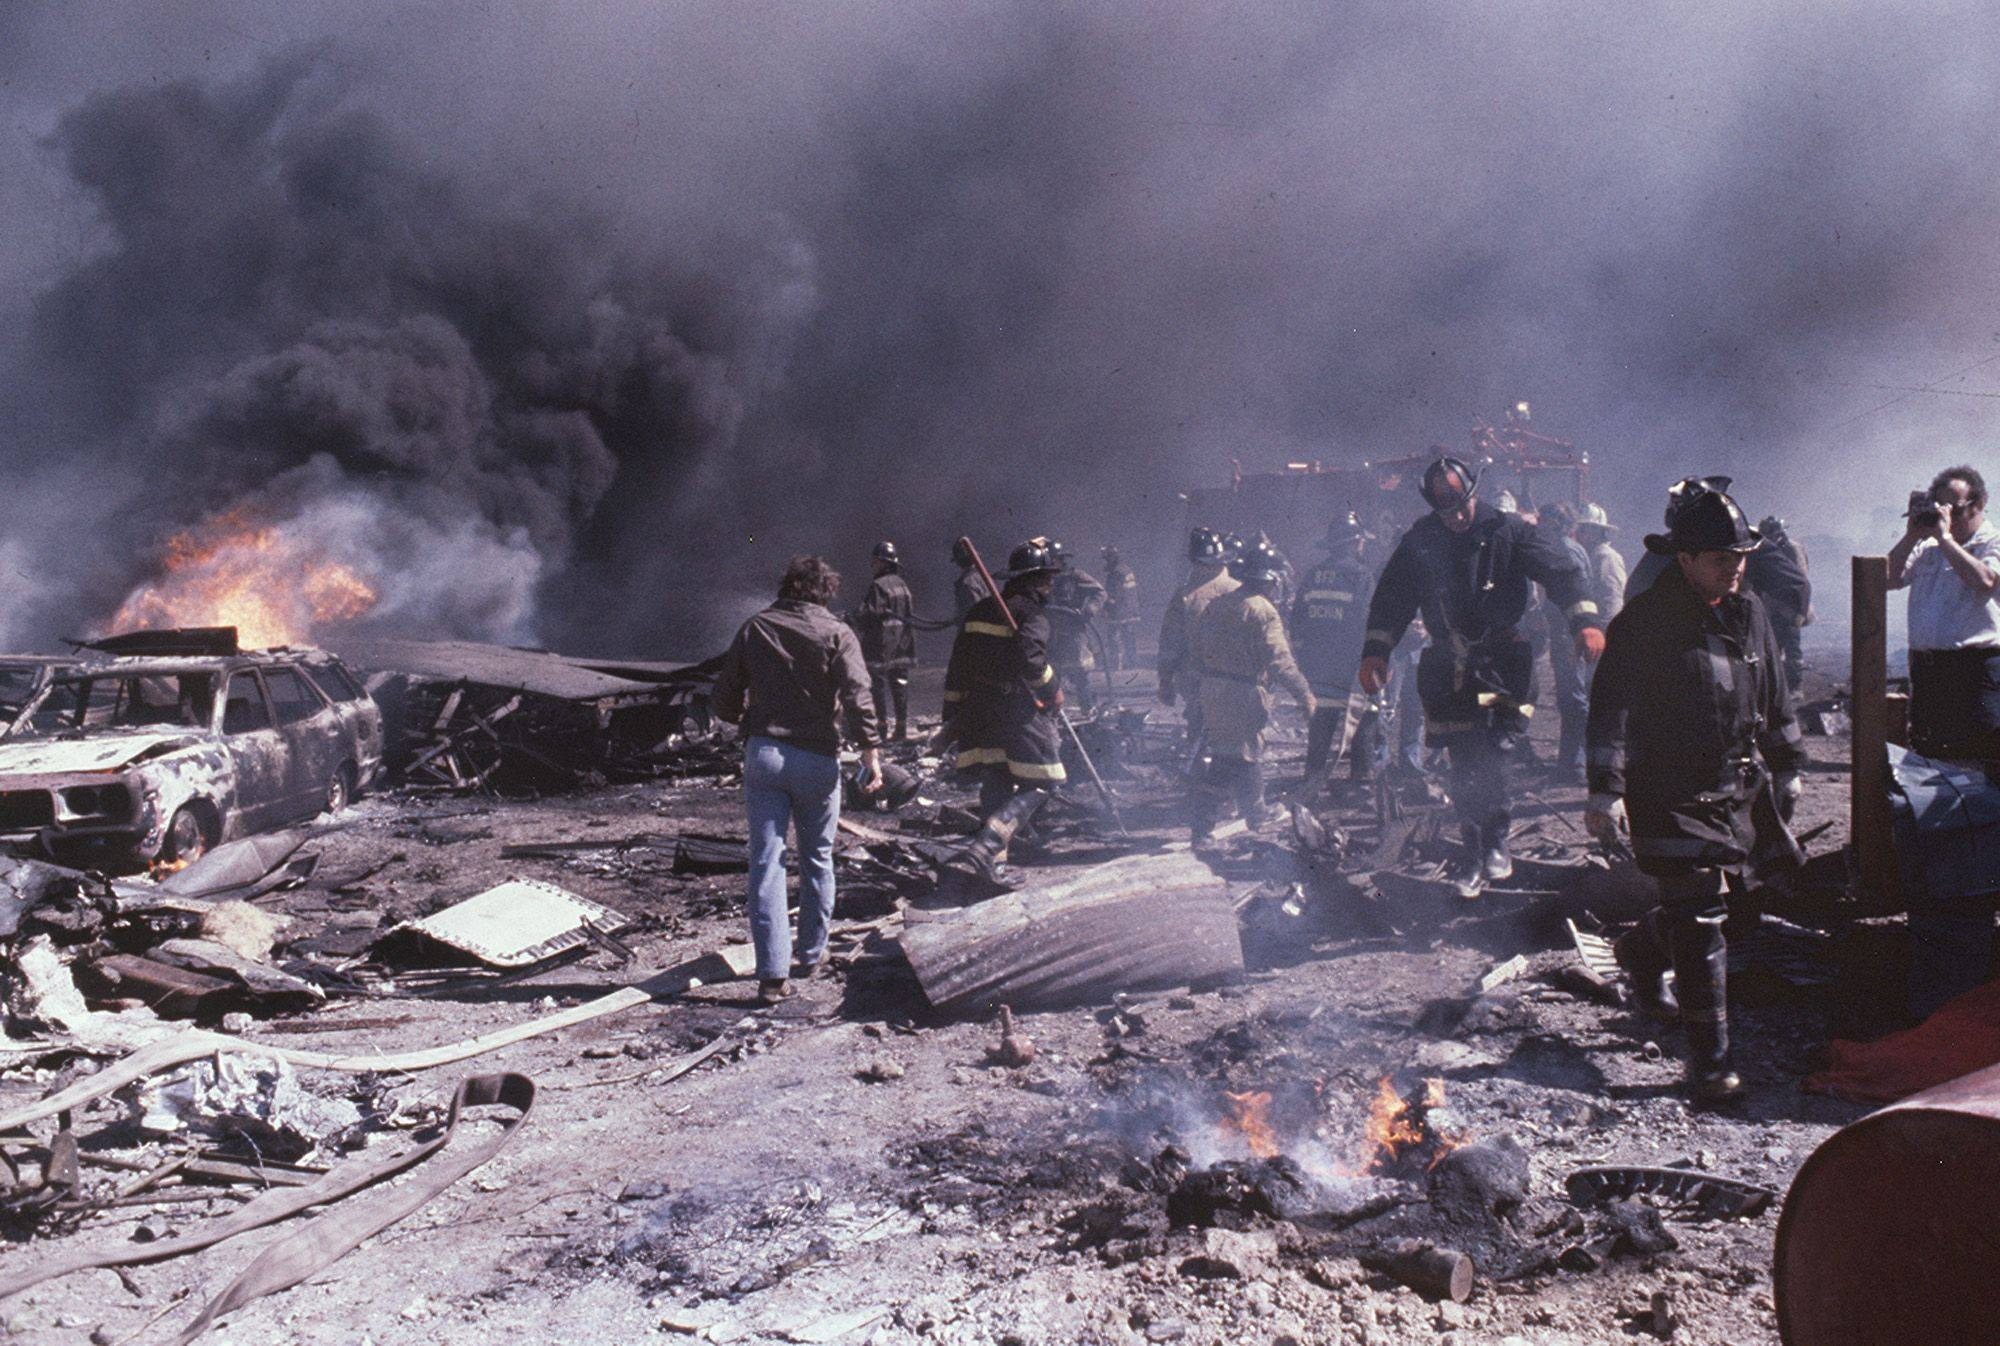 This is the scene at the crash site where American Airlines Flight 191 went down on May 25, 1979. All 271 passengers and crew members were killed, as well as two other people on the ground.